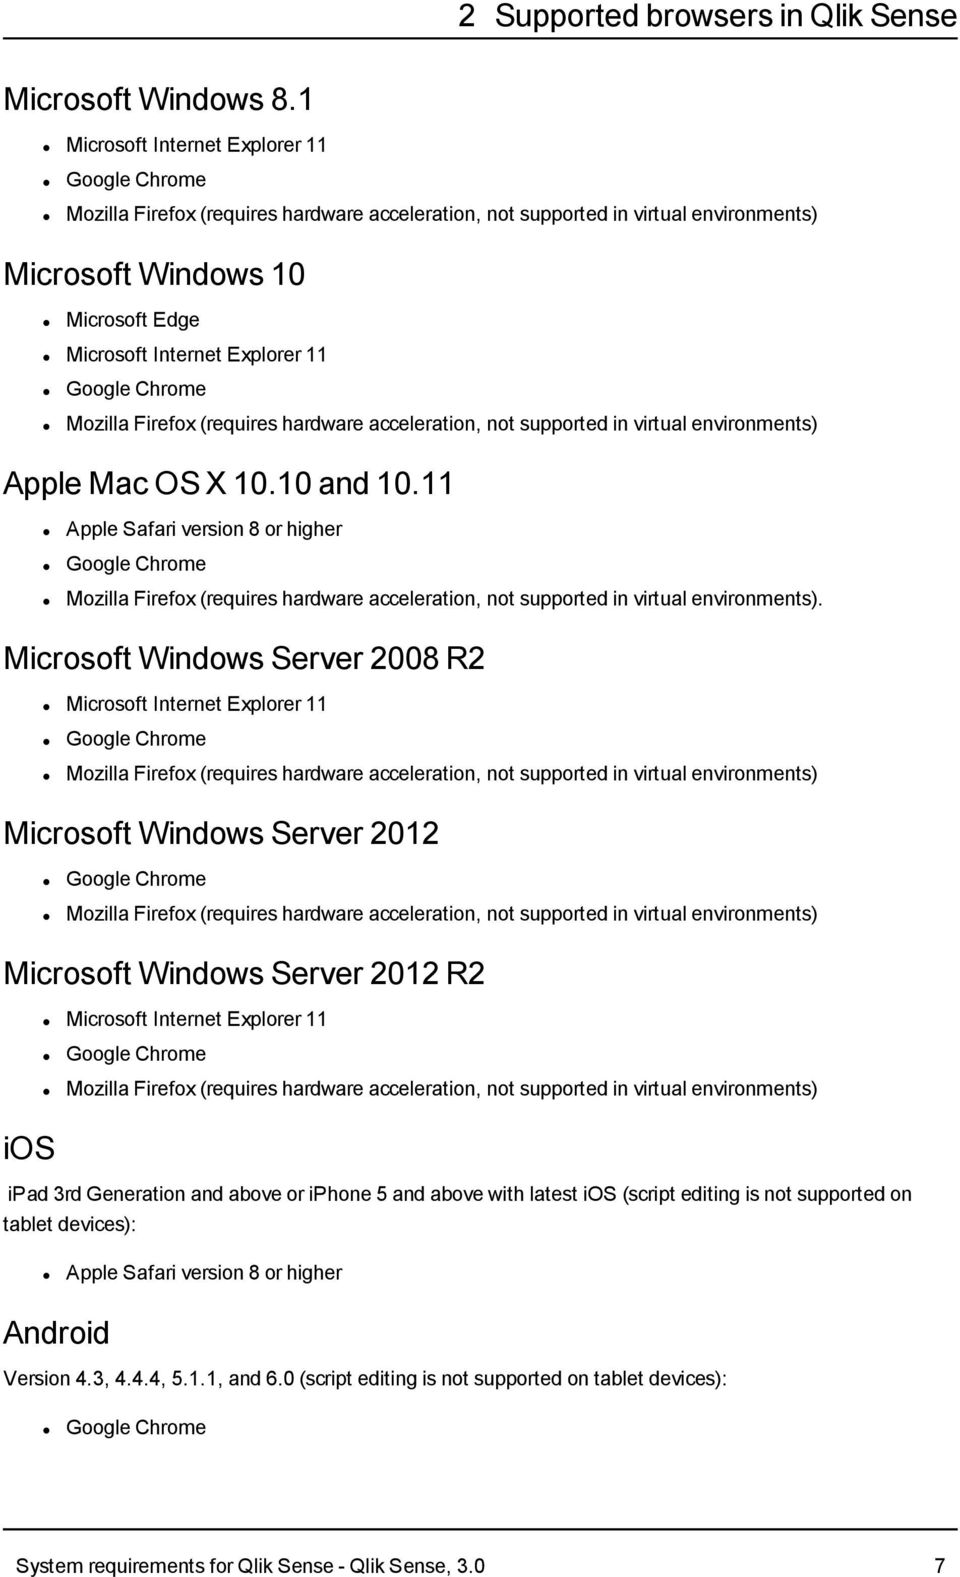 Microsoft Windows Server 2008 R2 Microsoft Windows Server 2012 Microsoft Windows Server 2012 R2 ios ipad 3rd Generation and above or iphone